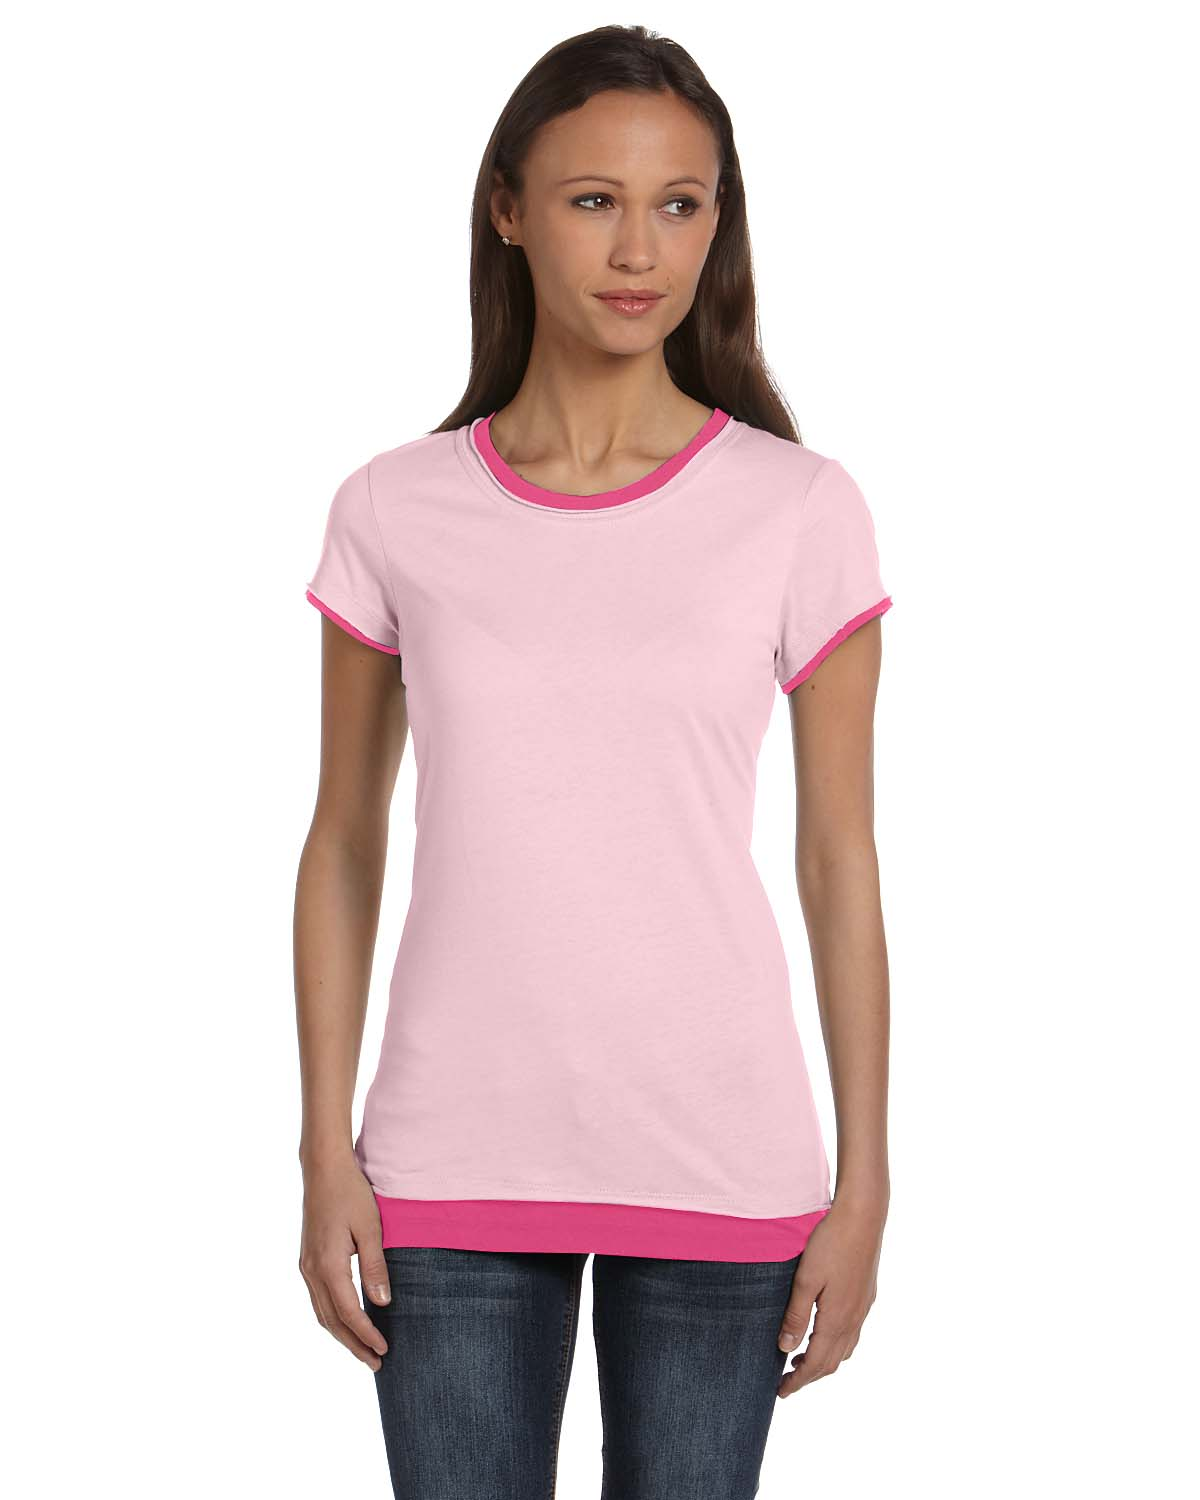 Bella Ladies Sheer Jersey Short-Sleeve 2-in-1 T-Shirt